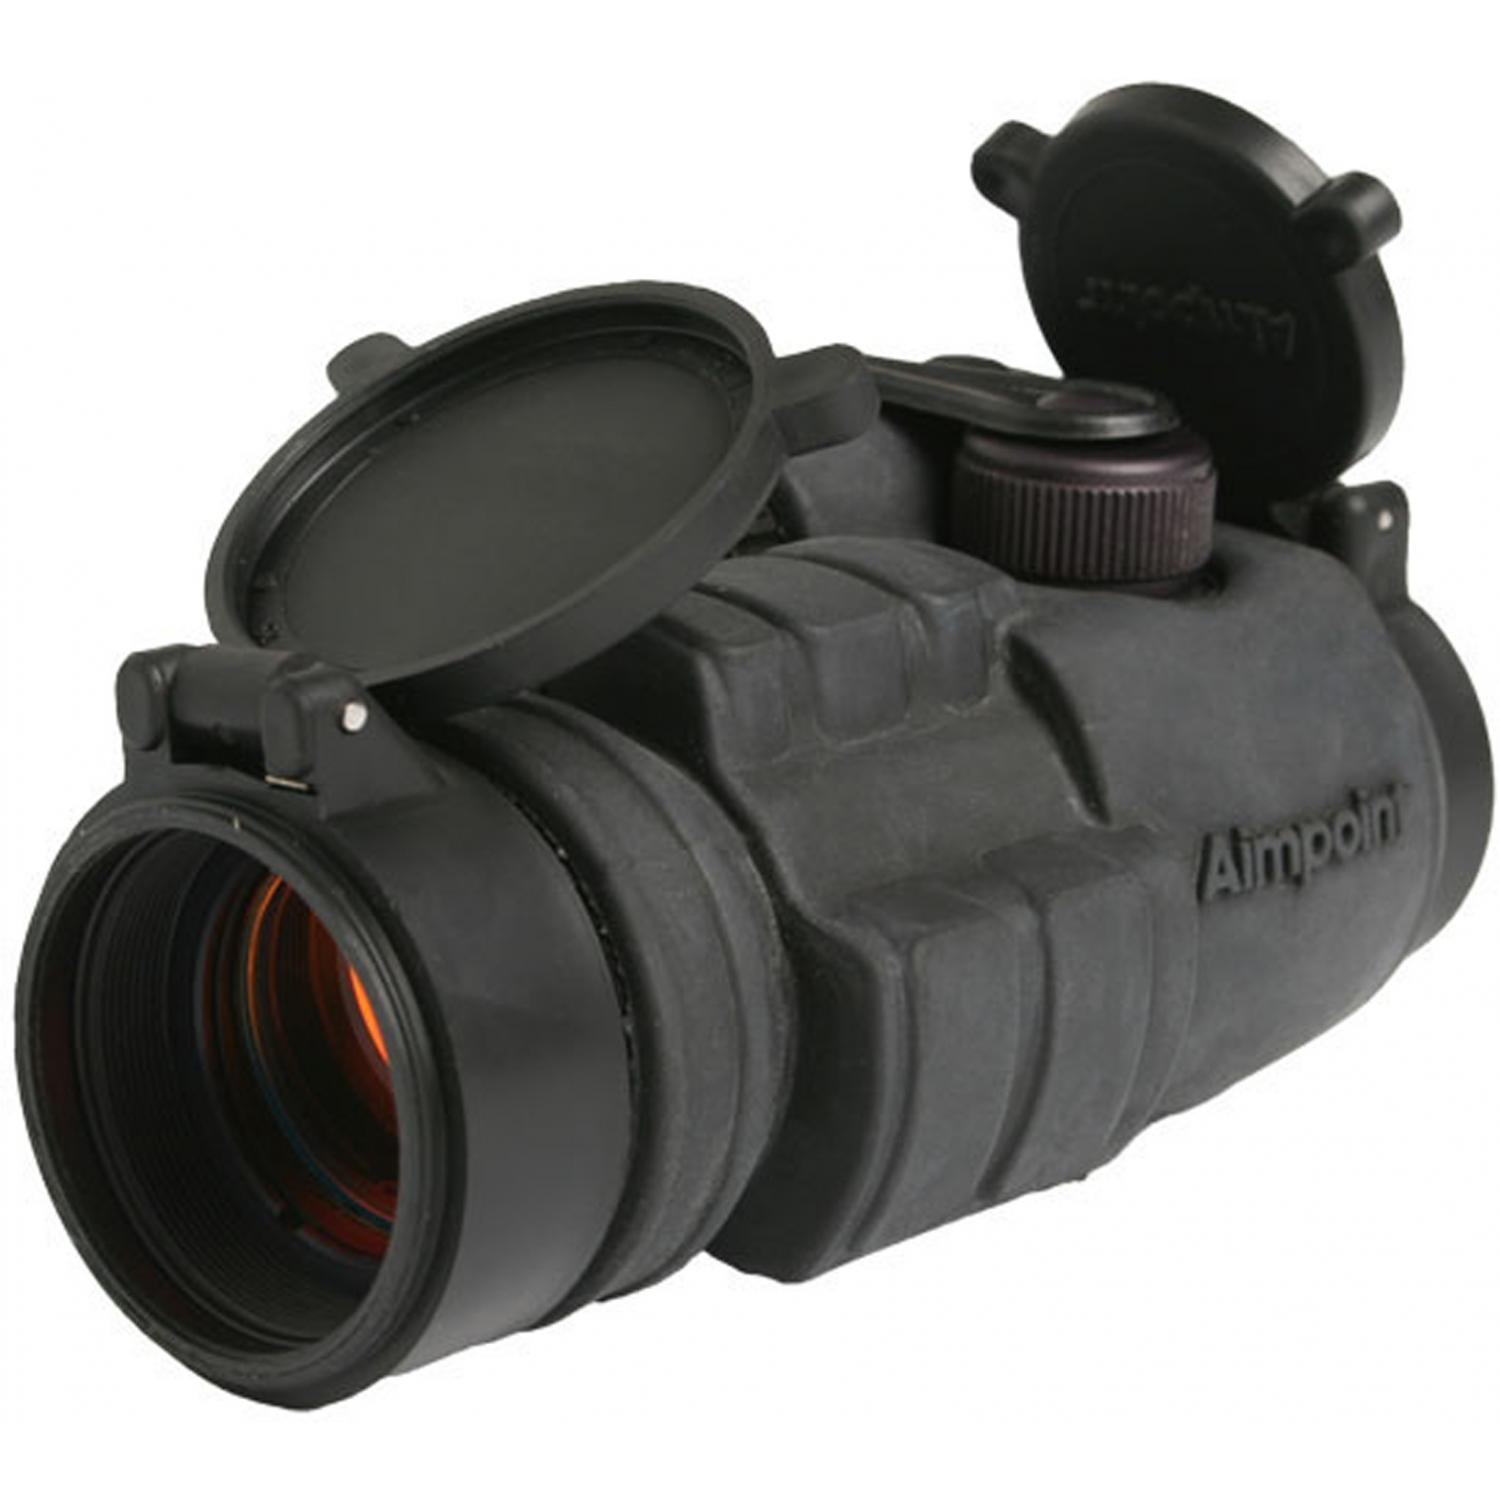 Picture of Aimpoint CompM3 Red Dot 4 MOA Sight Riflescope - Black - 11403